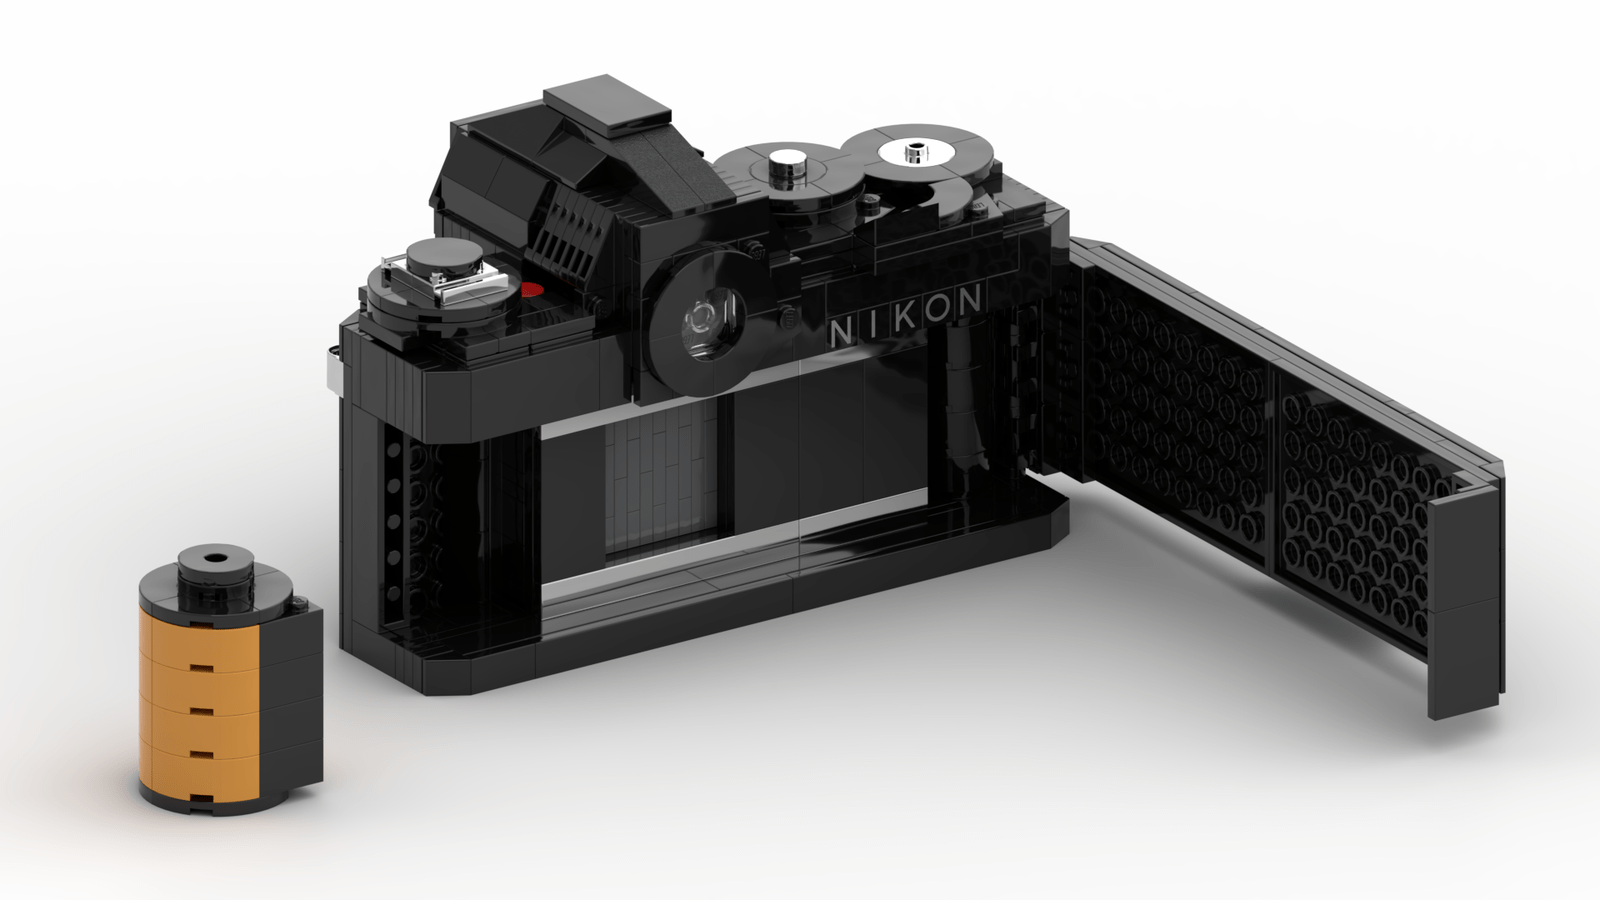 LEGO Nikon F3: Film door open + LEGO 135 cartridge (Credit: Ethan Brossard)